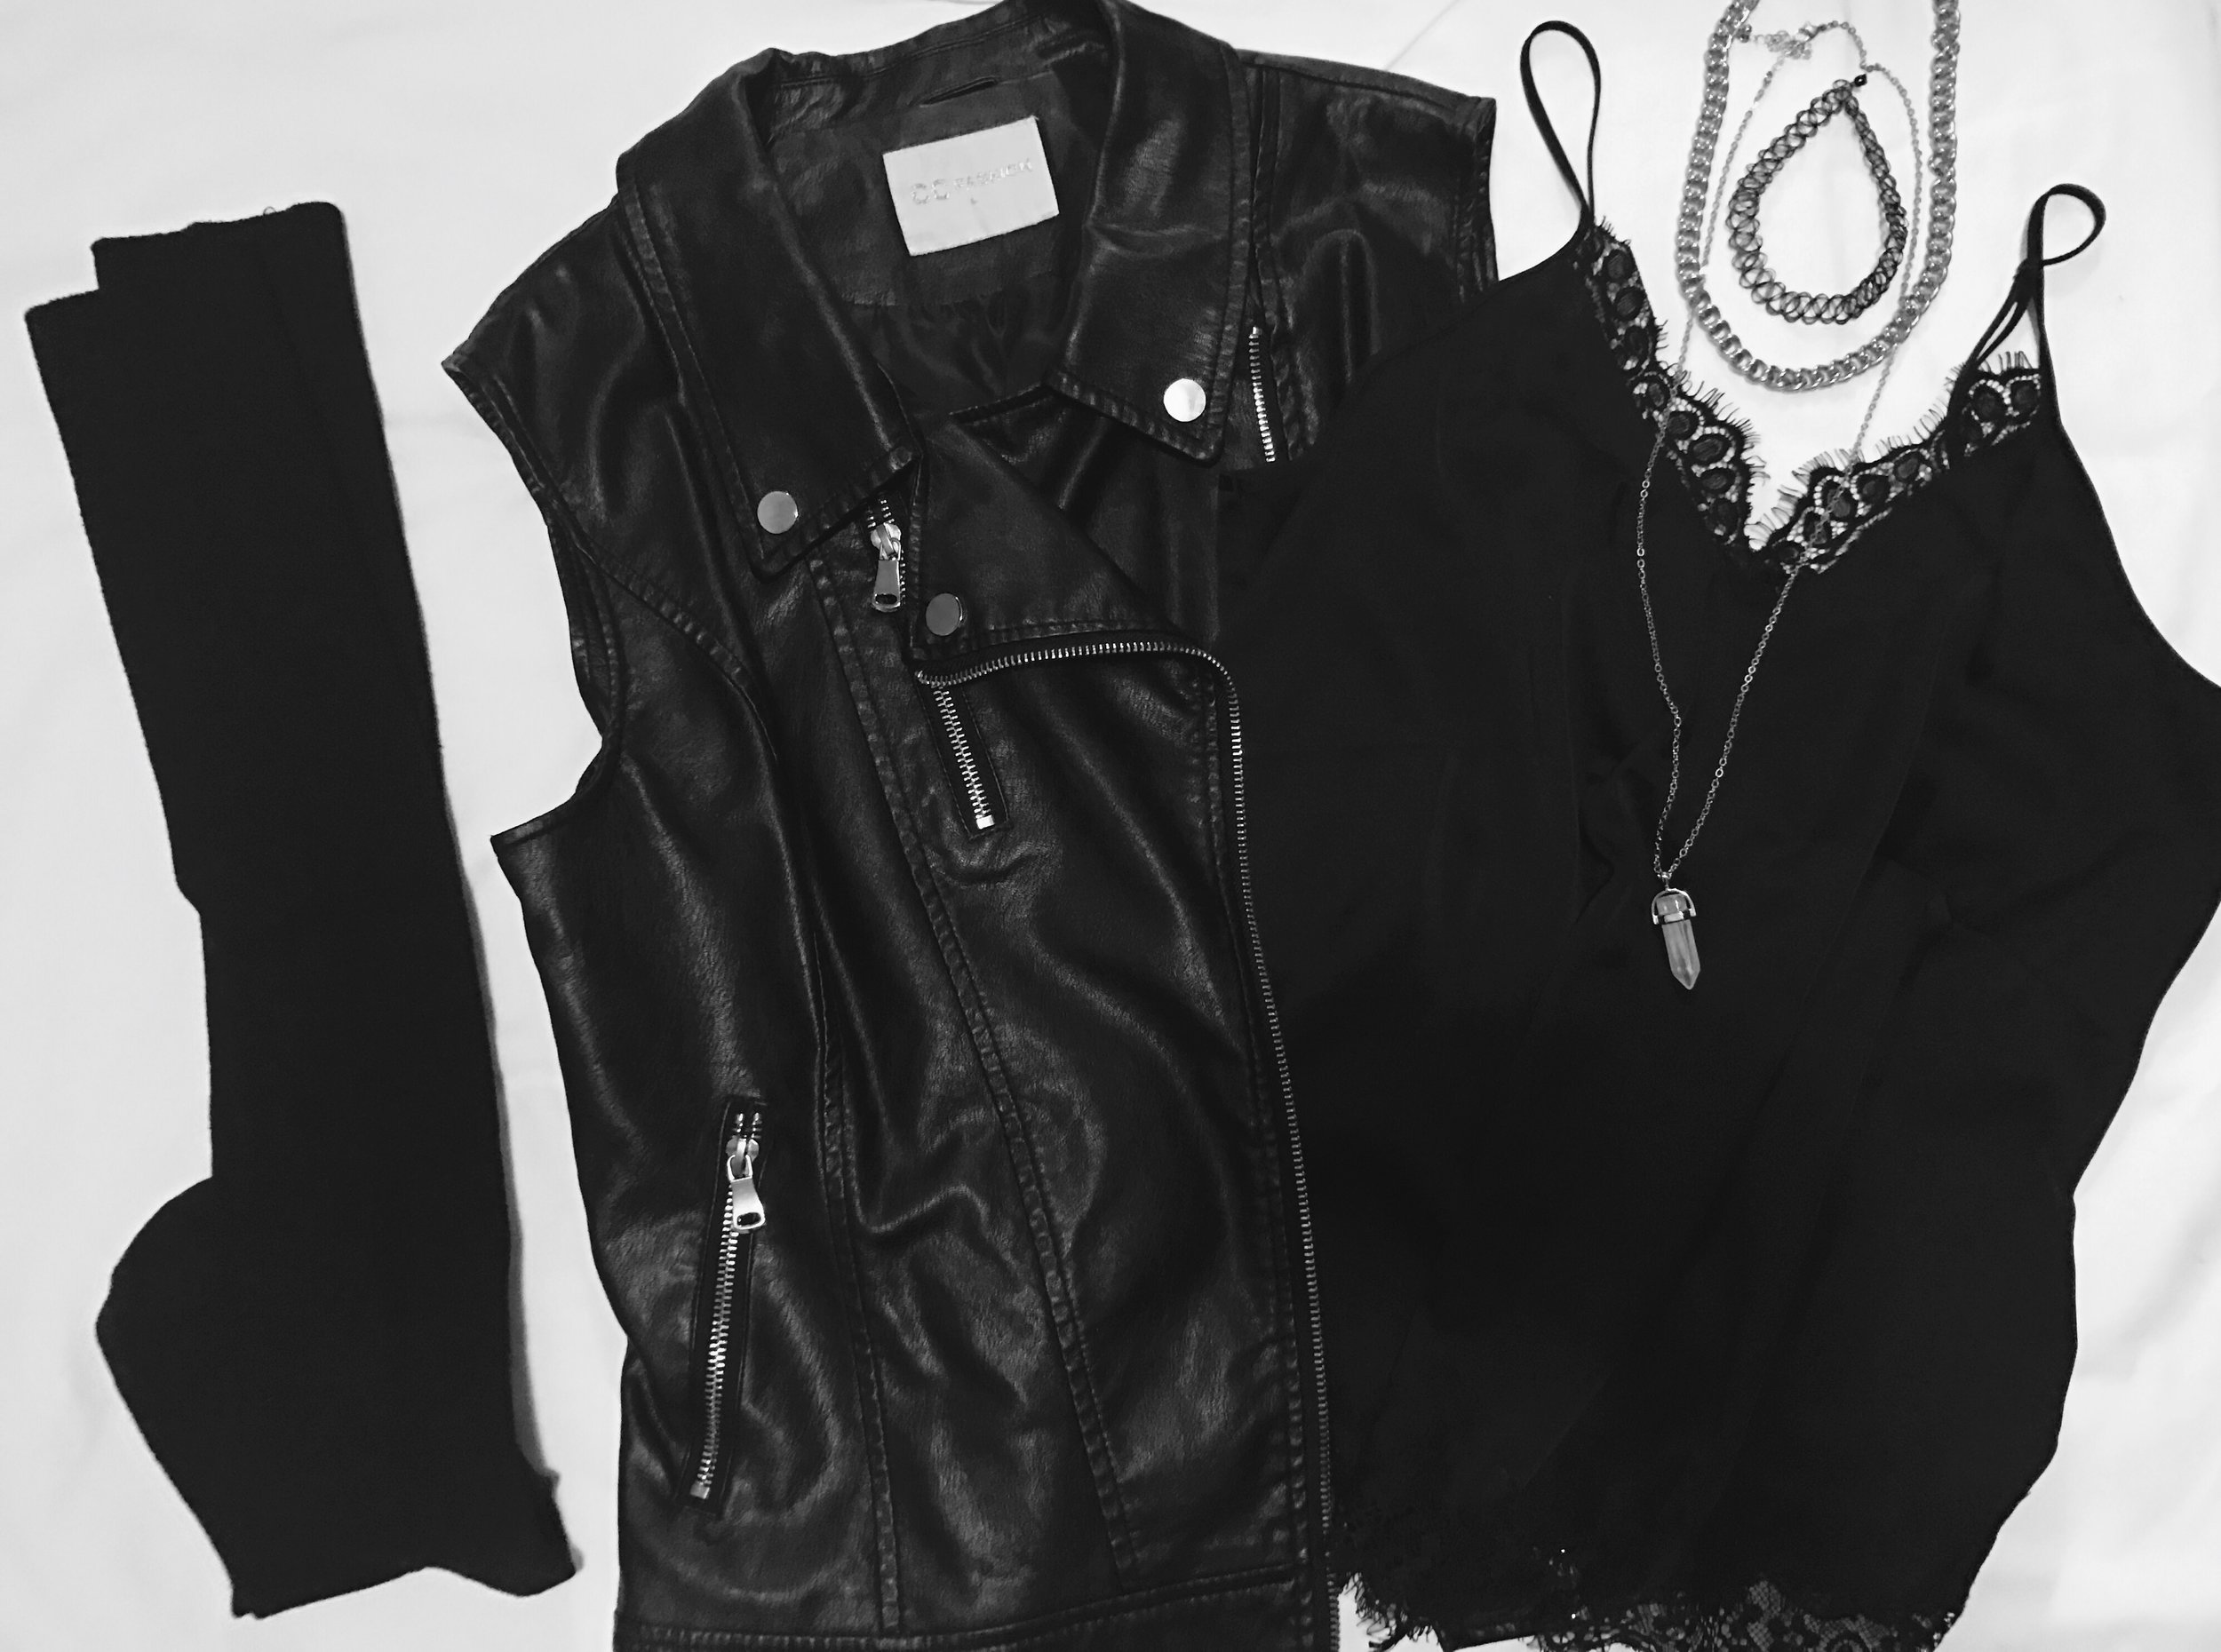 rock n roll rockstar metal leather lace badass alternative ootd flatlay flatlays outfit outfits fashion style girl